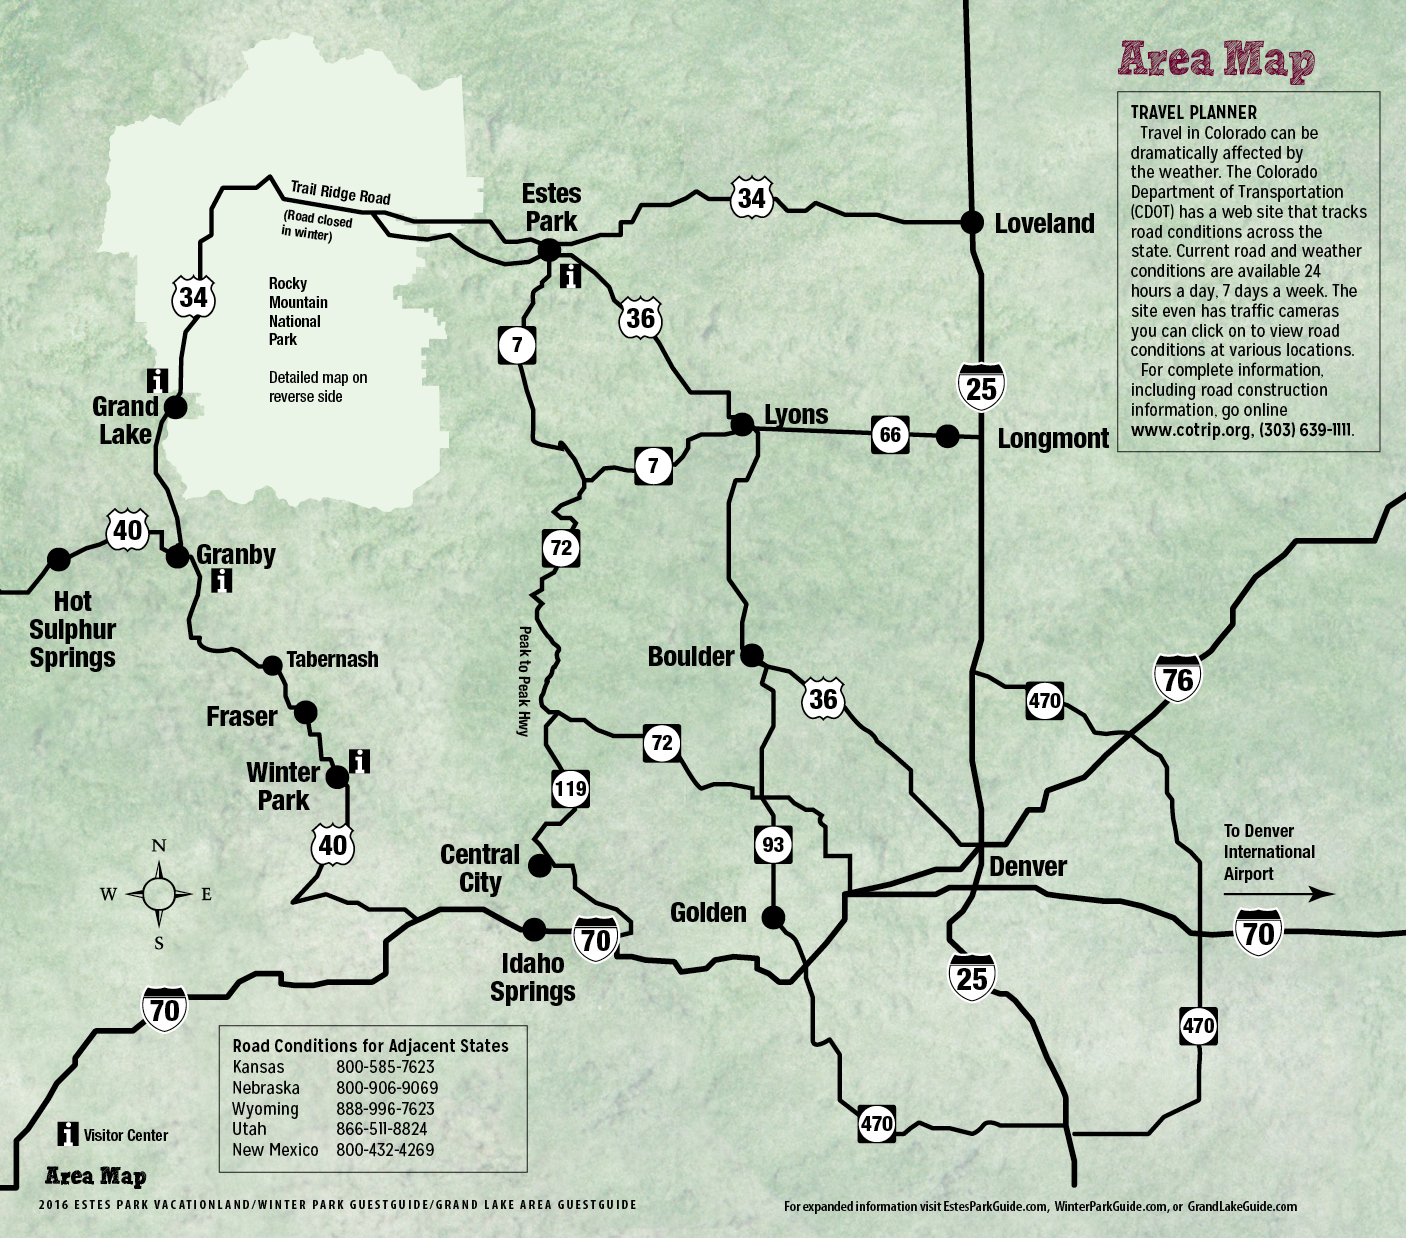 colorado-area-map-guestguides